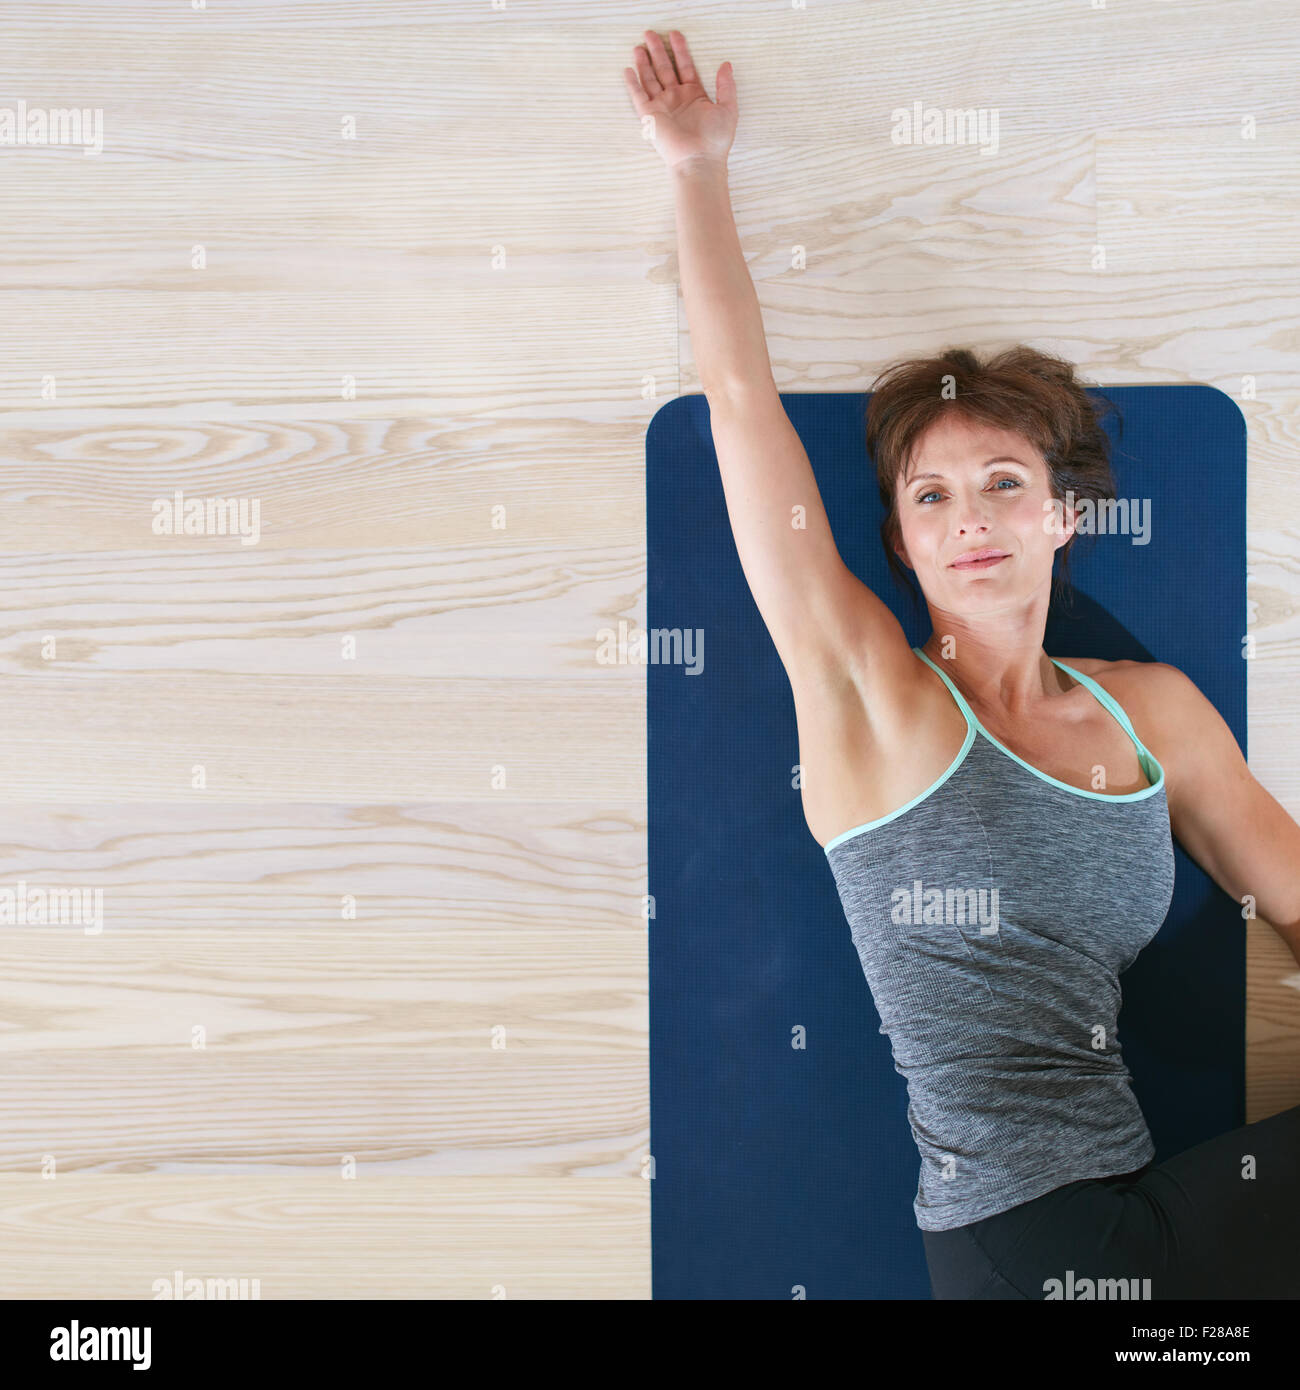 Top view of woman lying and stretching on exercise mat. Female on floor twisting her body and stretching her one - Stock Image